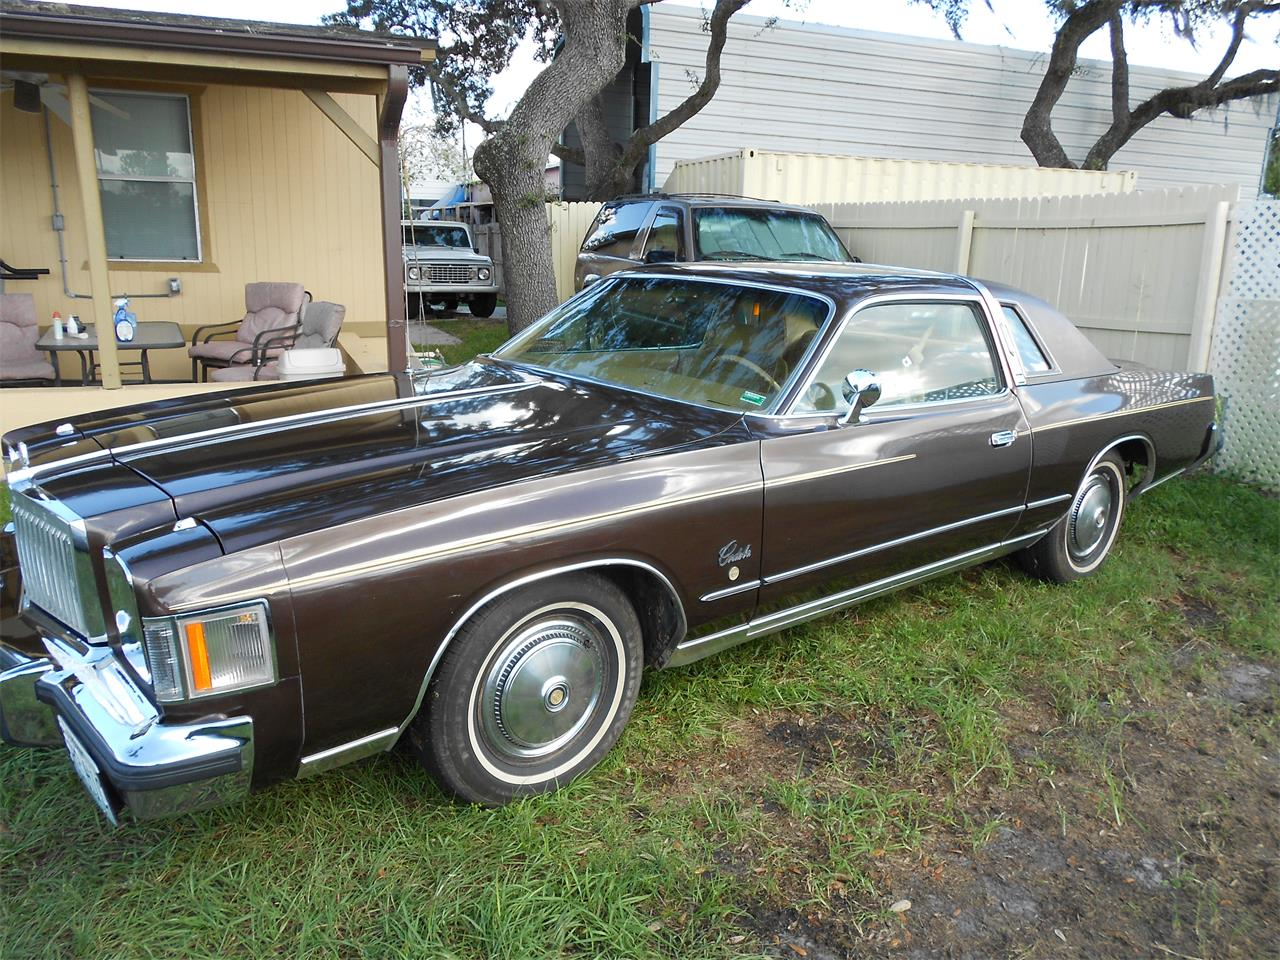 Large Picture of '79 Chrysler Cordoba - $9,500.00 Offered by a Private Seller - CEHN